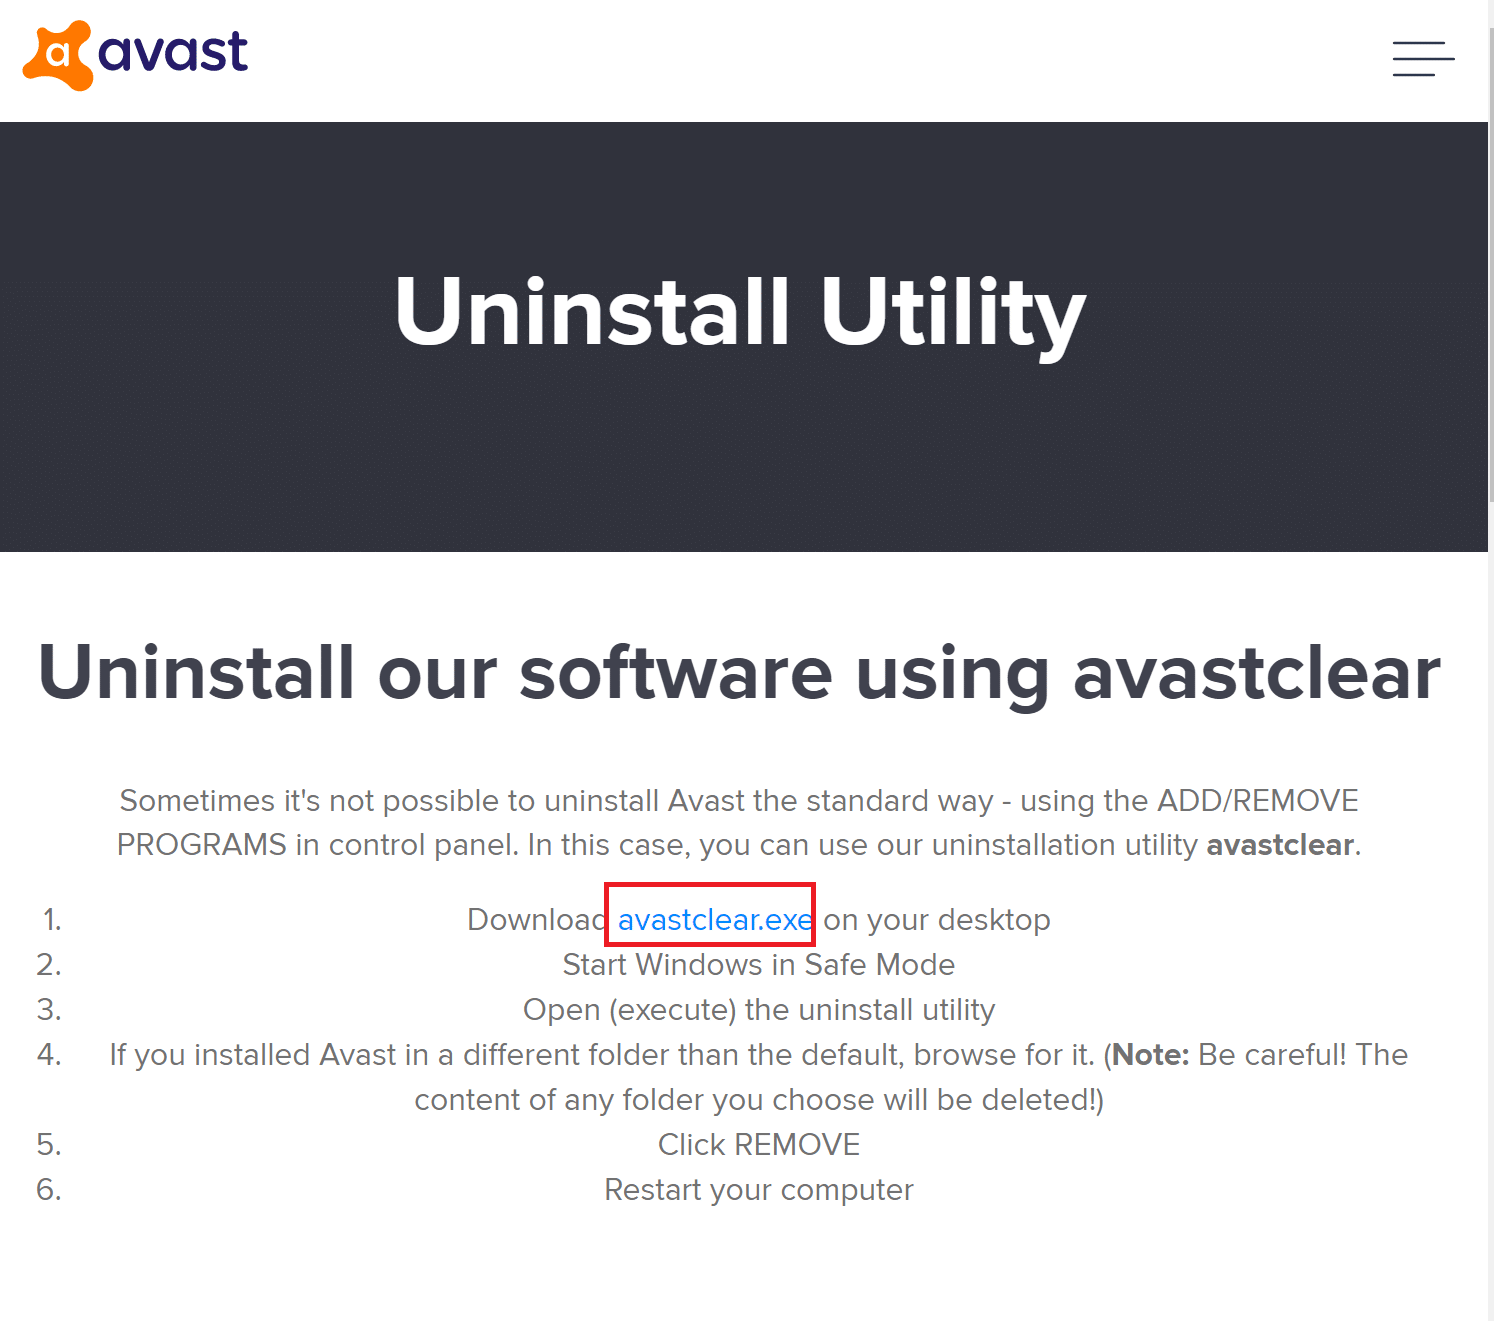 Click on Download Avastclear.exe to get the Avast Uninstall Utility